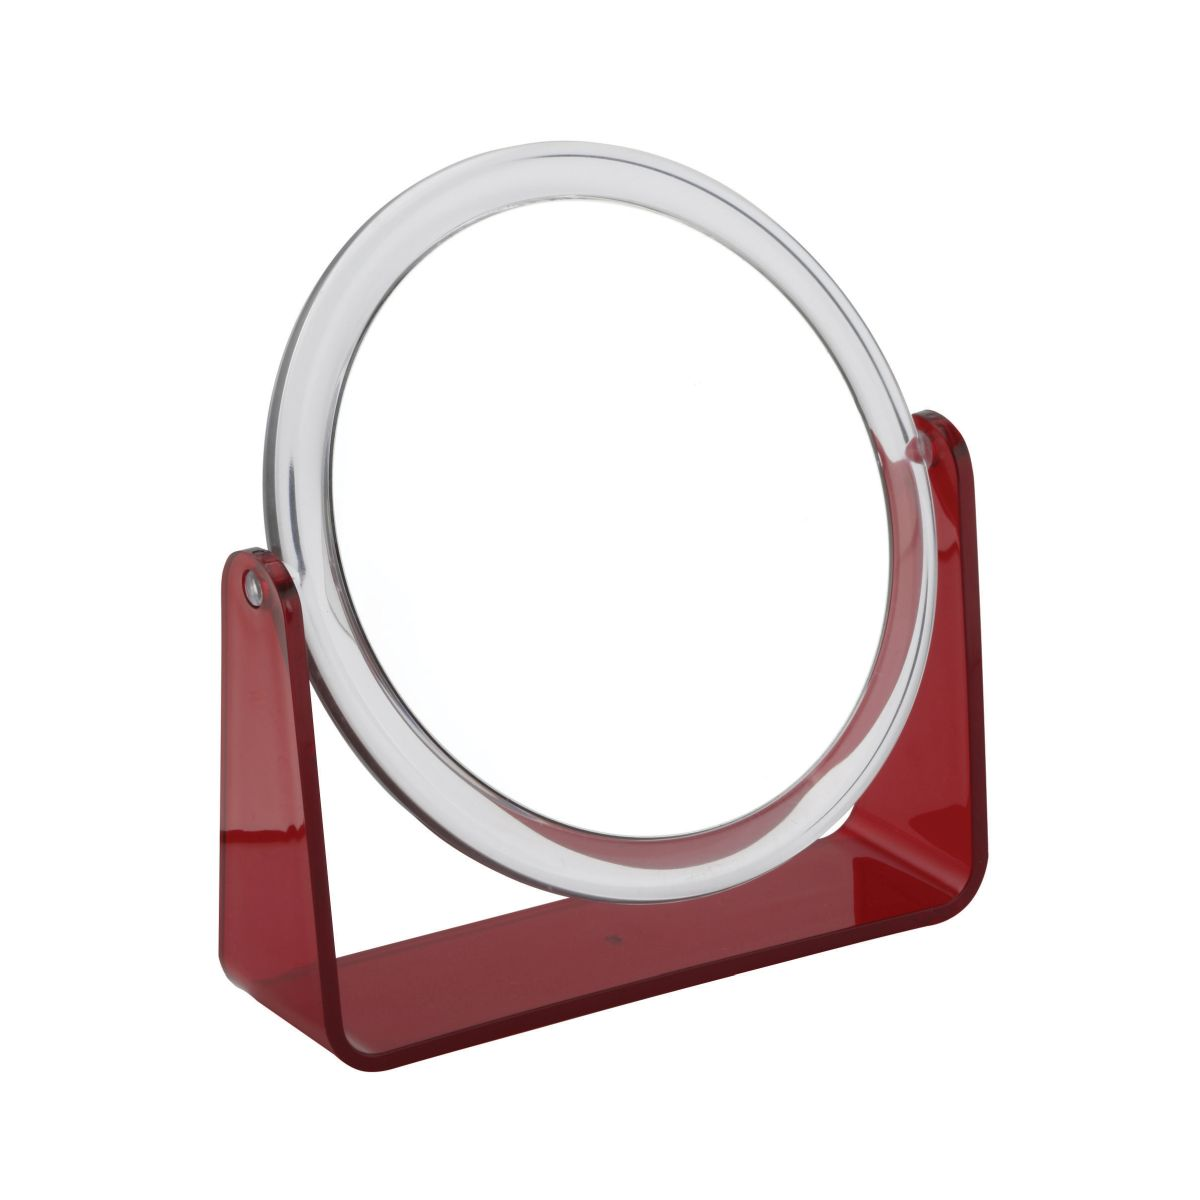 919 red 2 - Zara' 5x Magnification Mirror with Red Base - 919RED